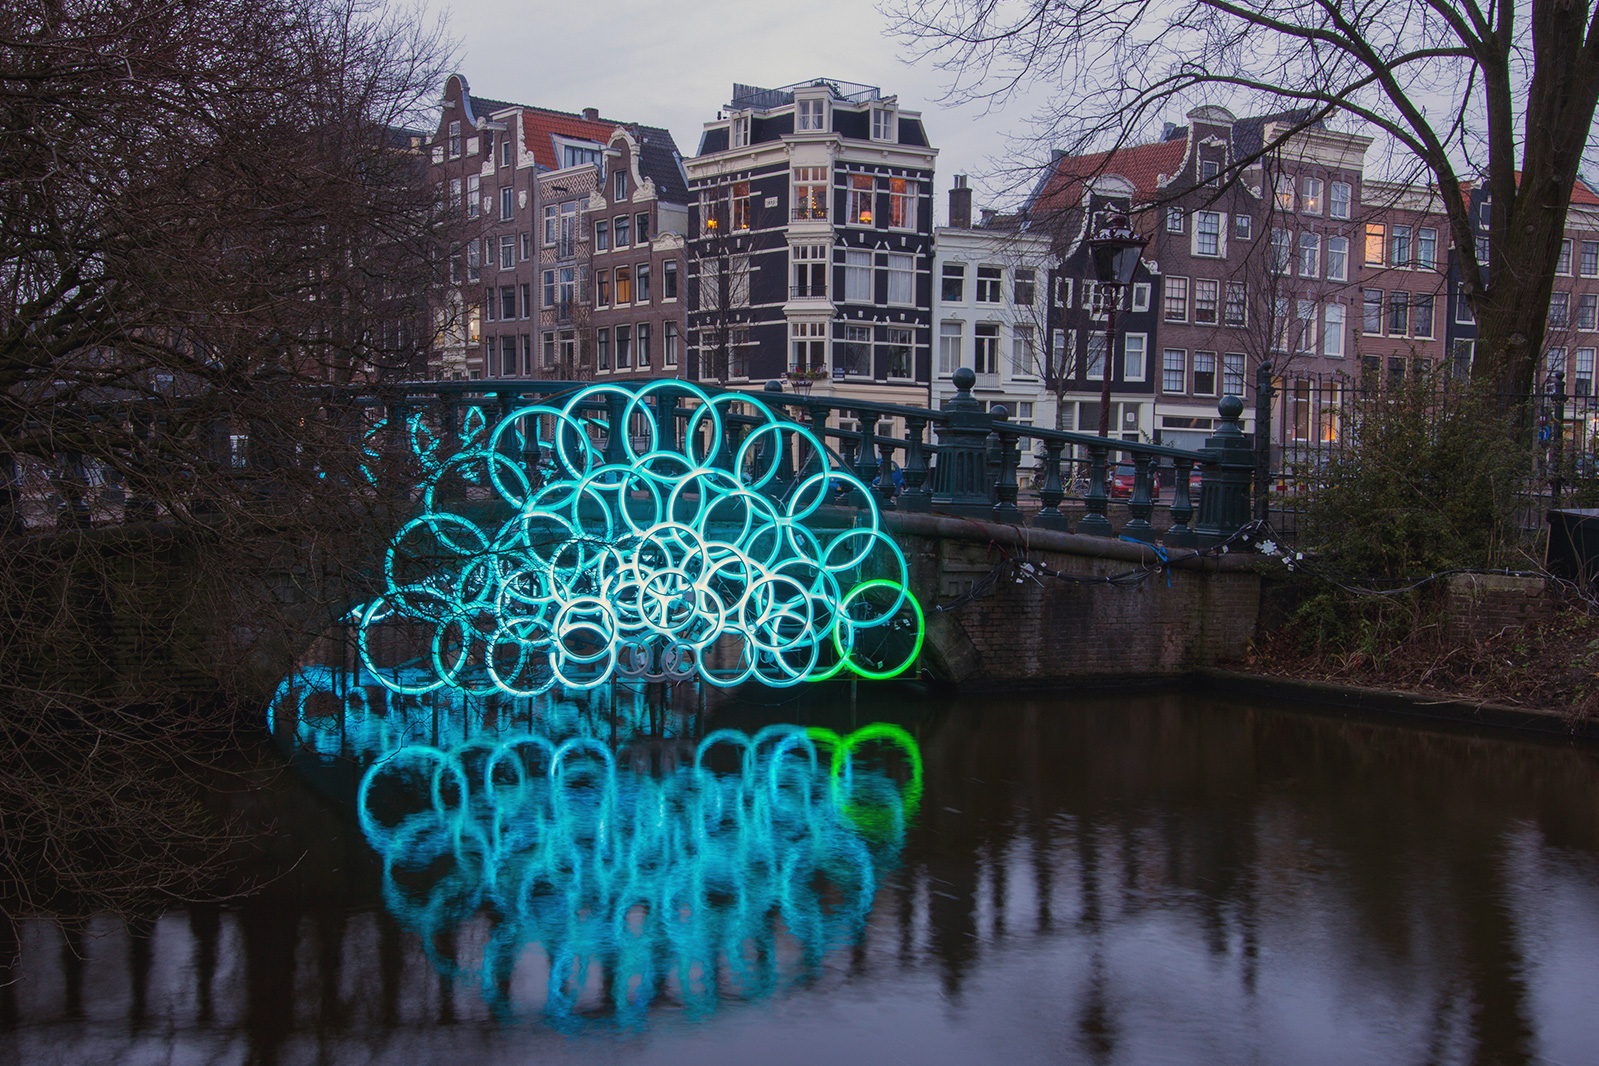 The Friendala artwork by Oh my light! Studio at Amsterdam Light Festival symbolise unity and integration